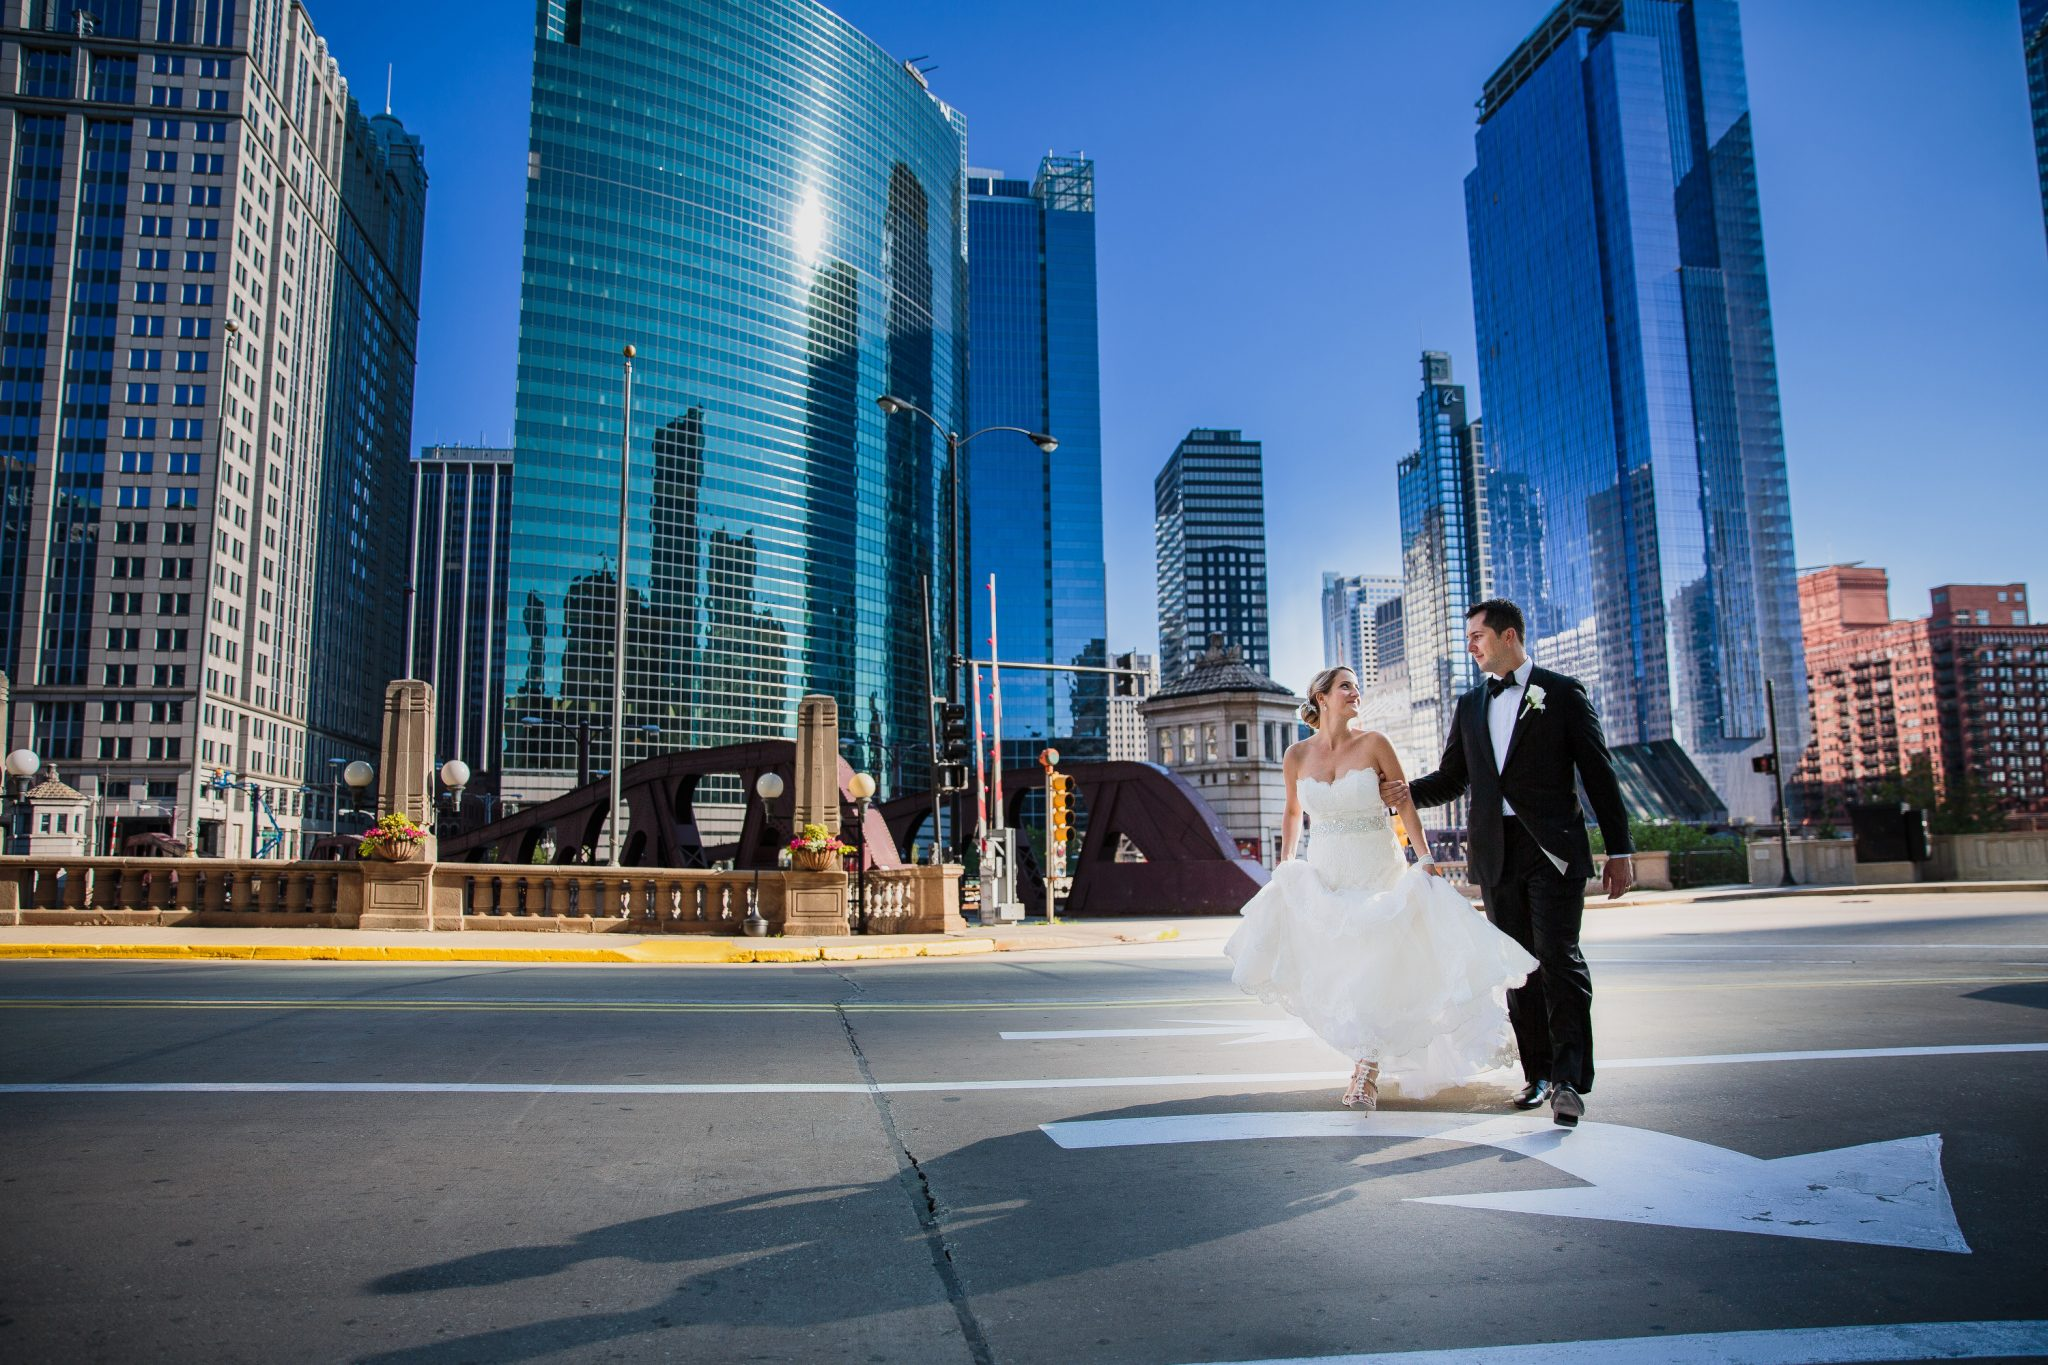 A Chicago bride and groom walk the city streets hand in hand.